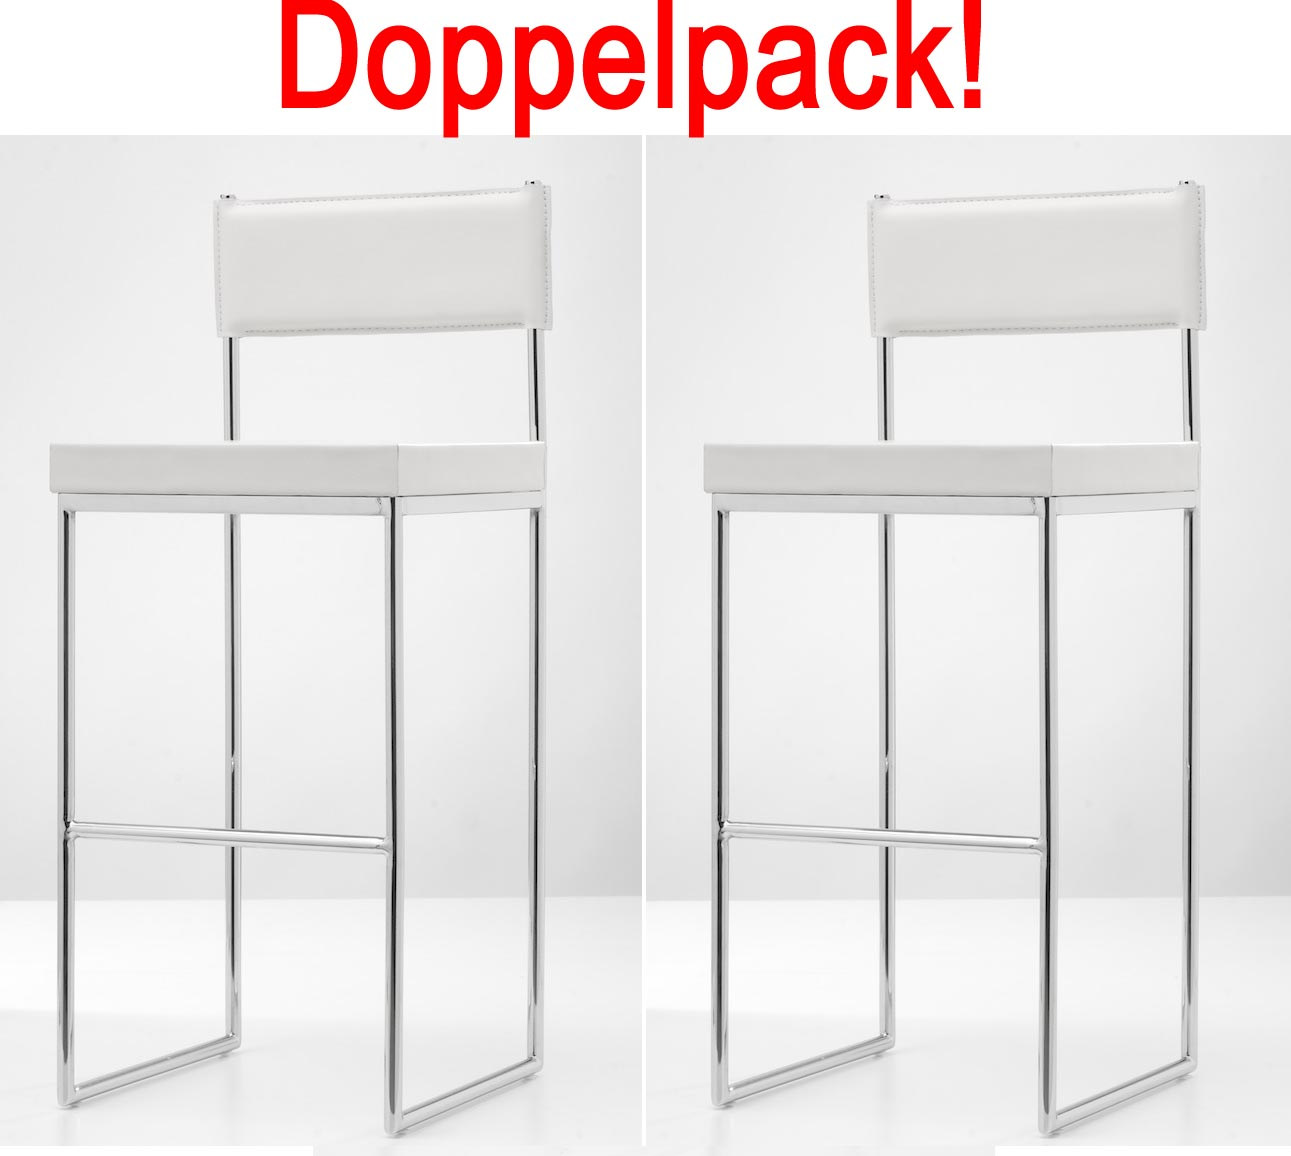 Doppelpack barhocker dallas wei design barstuhl for Design barstuhl